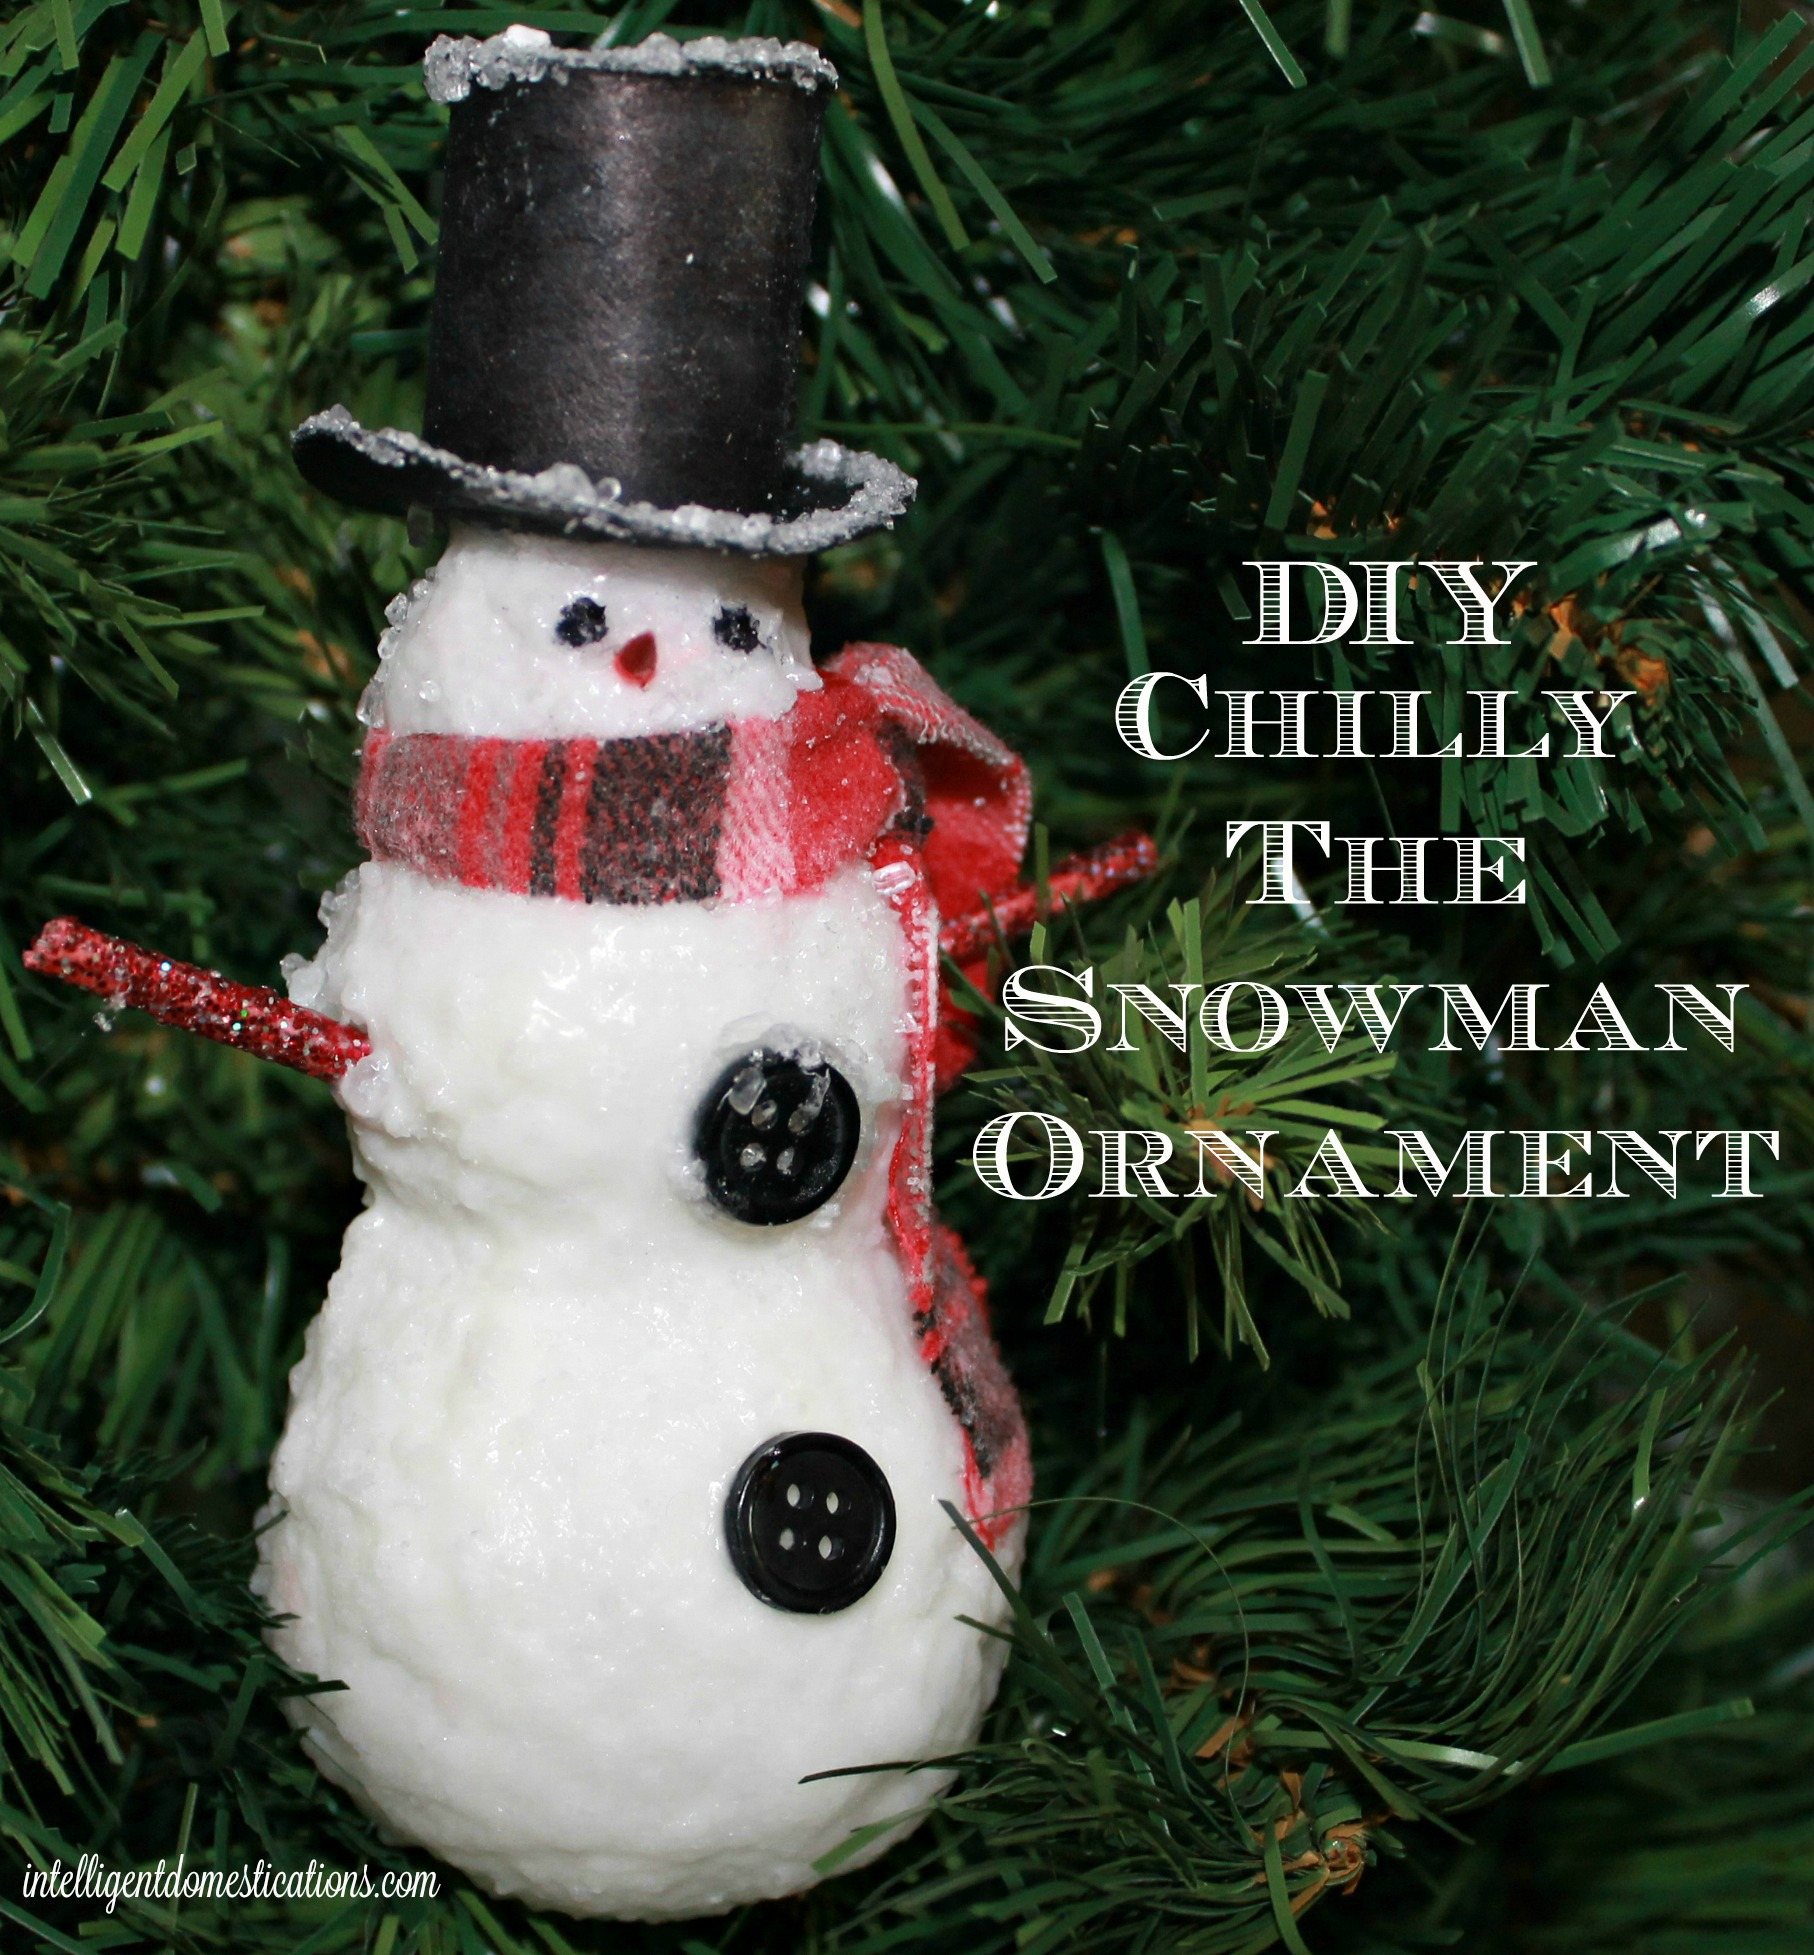 Chilly The Snowman Ornament .intelligentdomestications.com